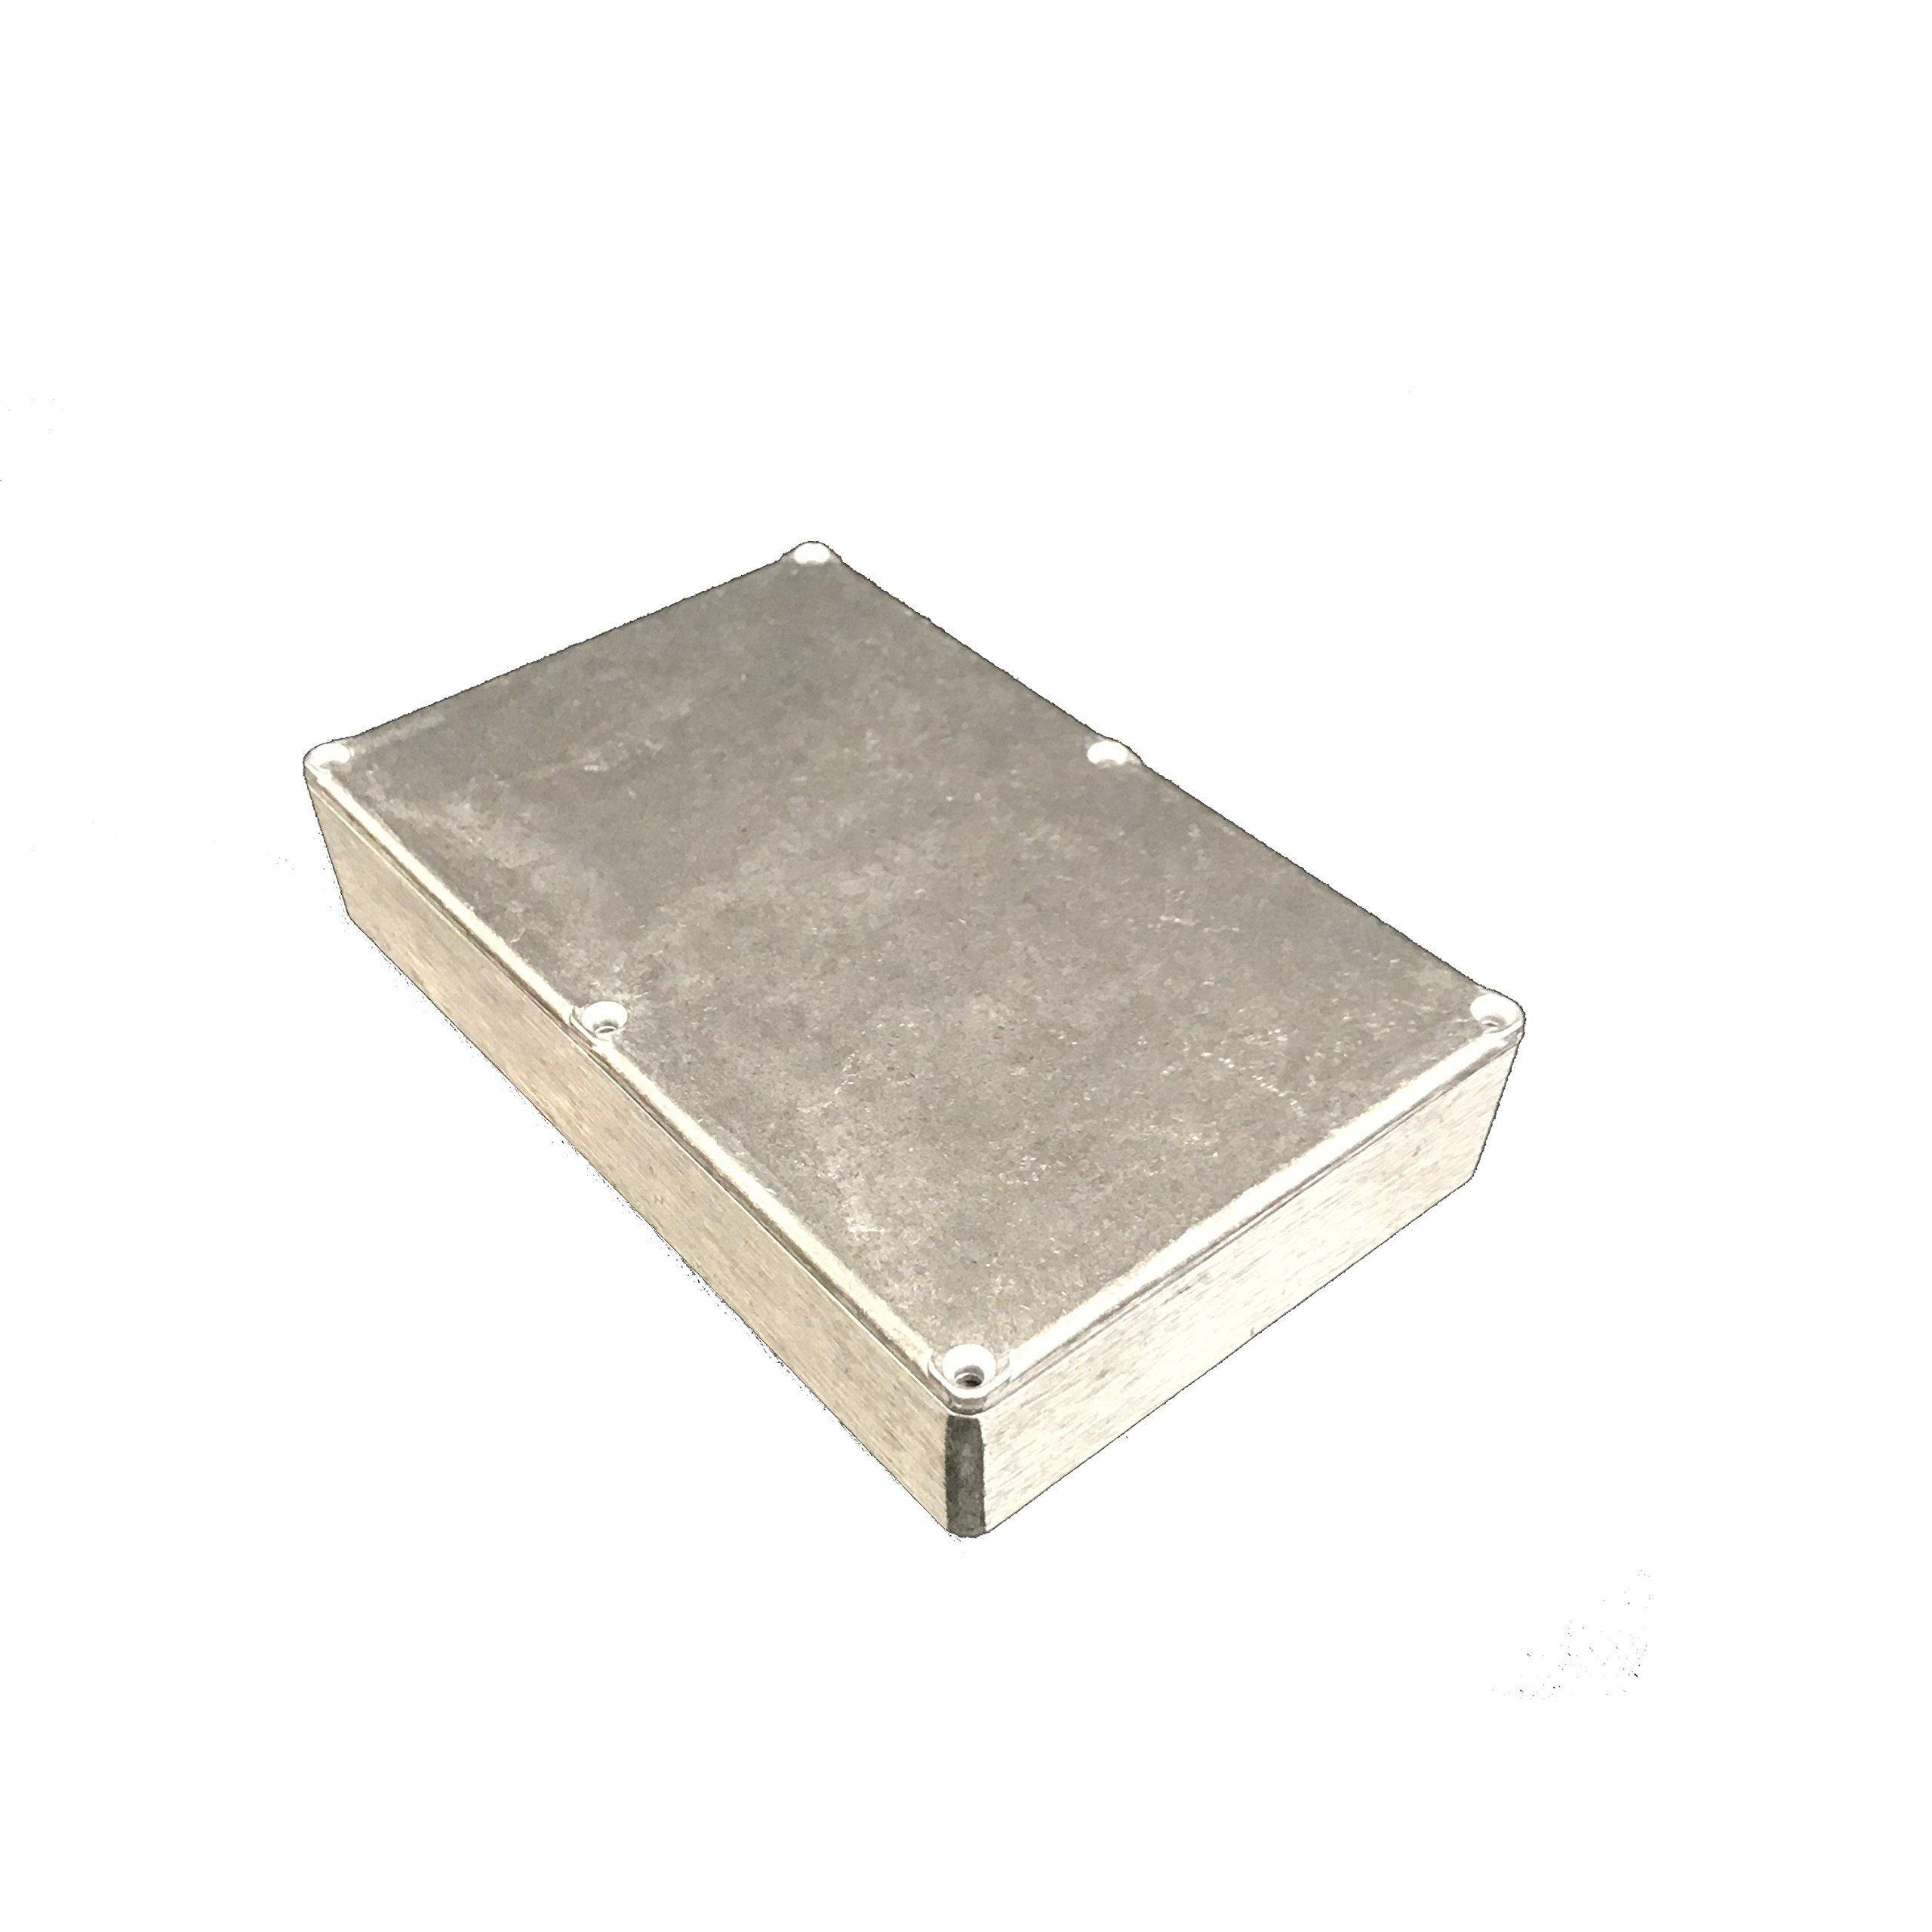 BUD Industries CU-477 Aluminum Econobox – Corrosion Resistant, ABS Electric Enclosure for Electronic Applications. Conduit and Fittings